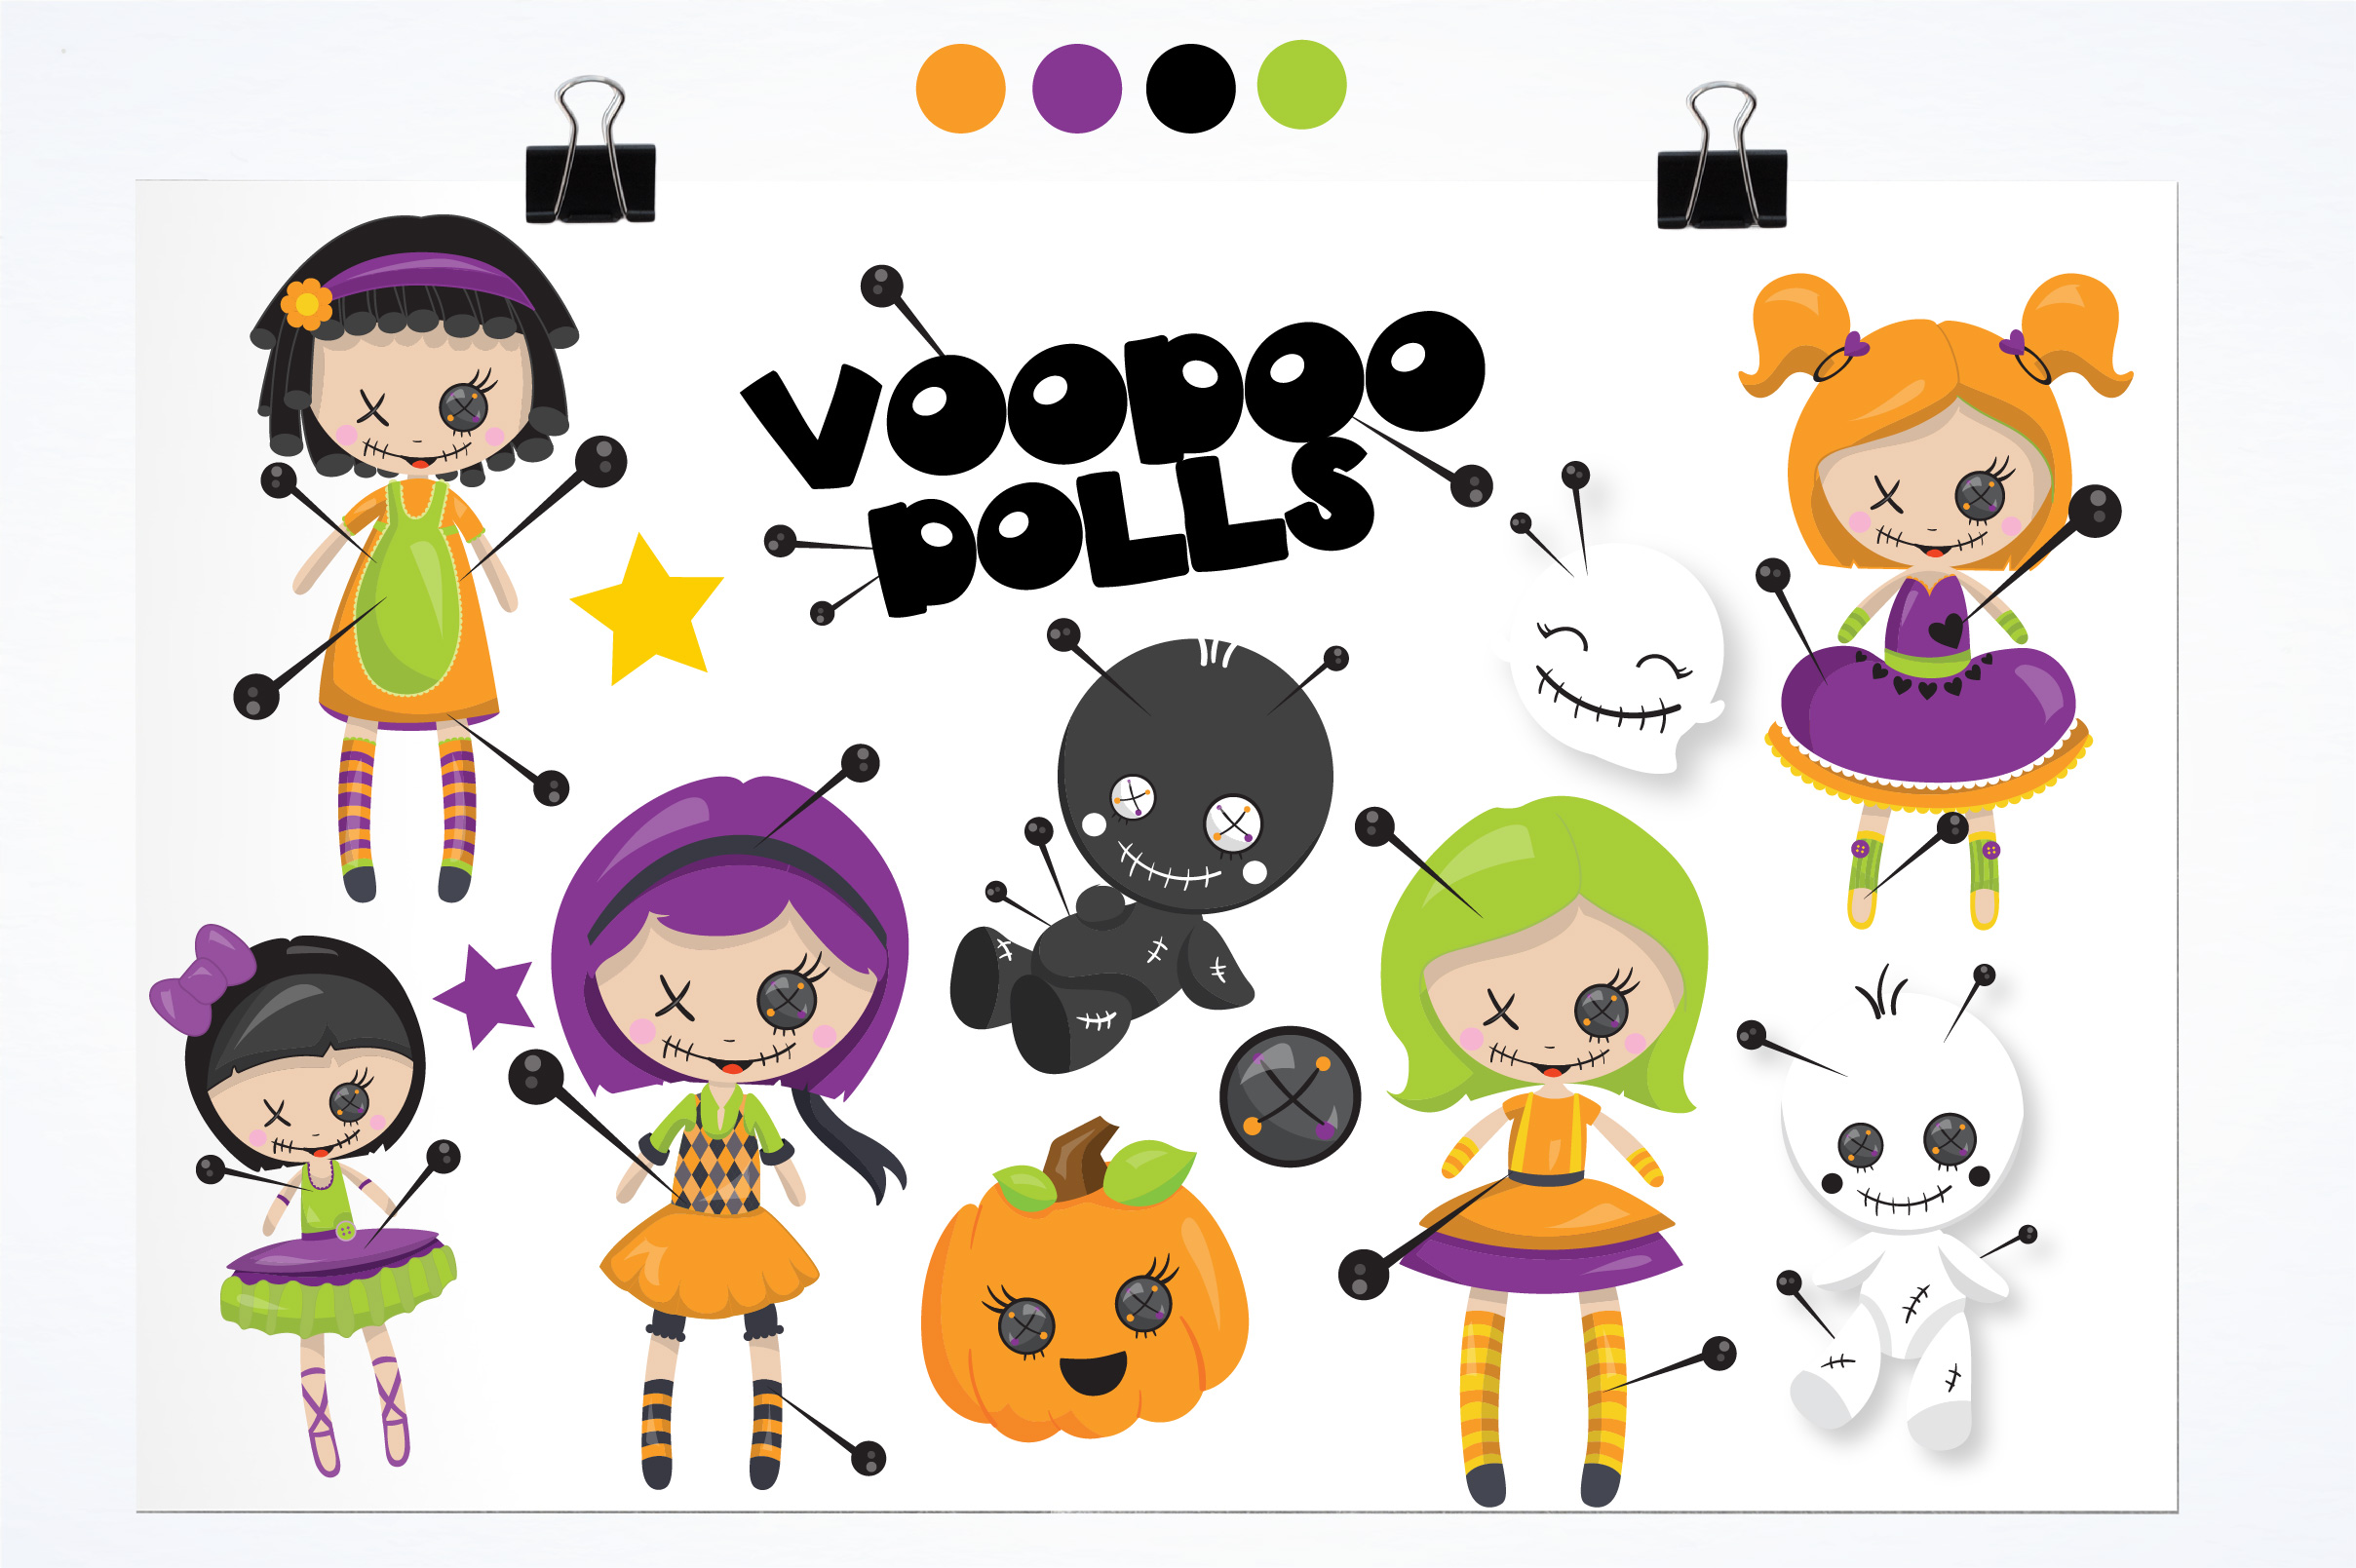 Voodoo dolls graphics and illustrations example image 2